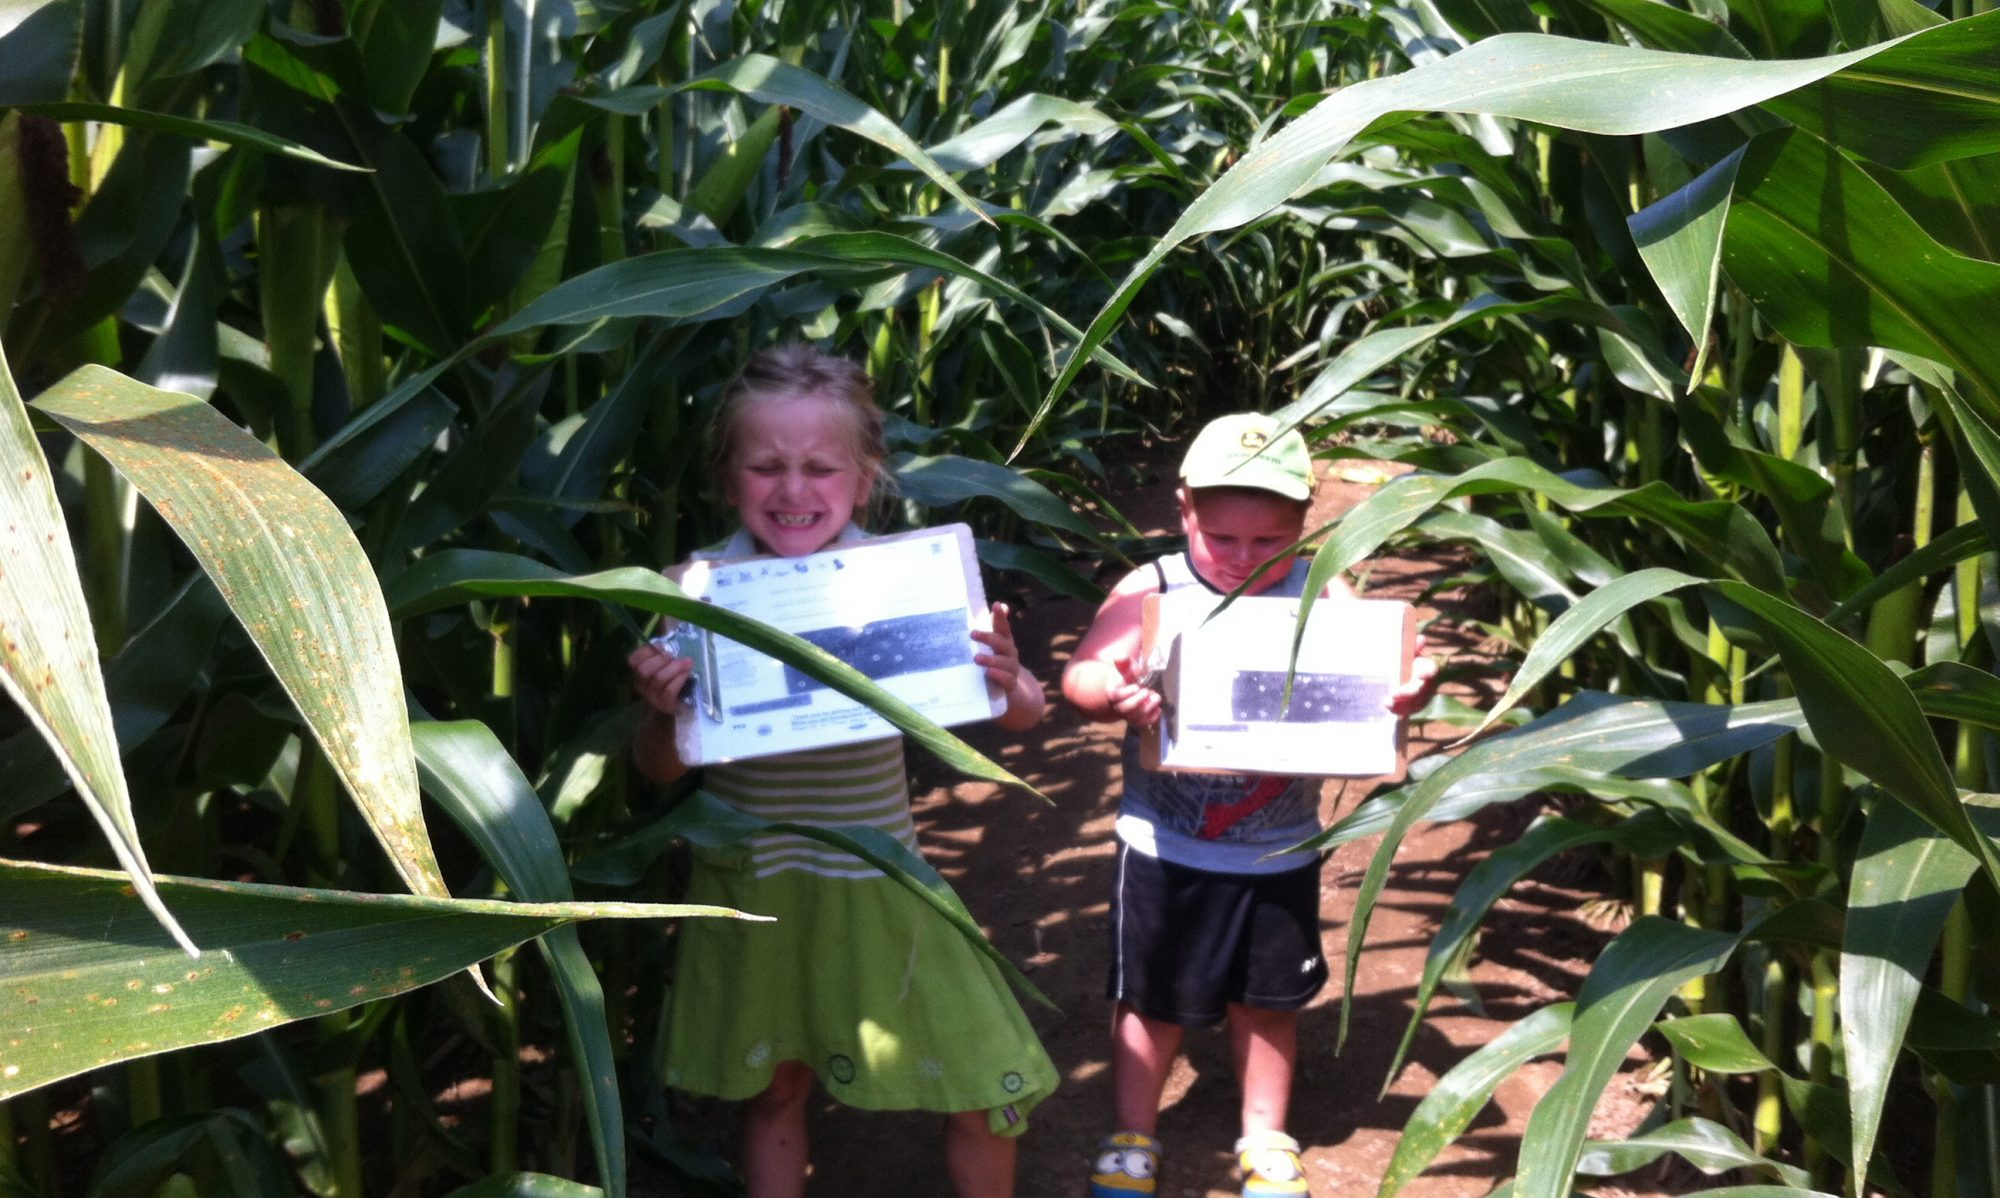 The Hanes Corn Maze & Tiny Shop Bakery